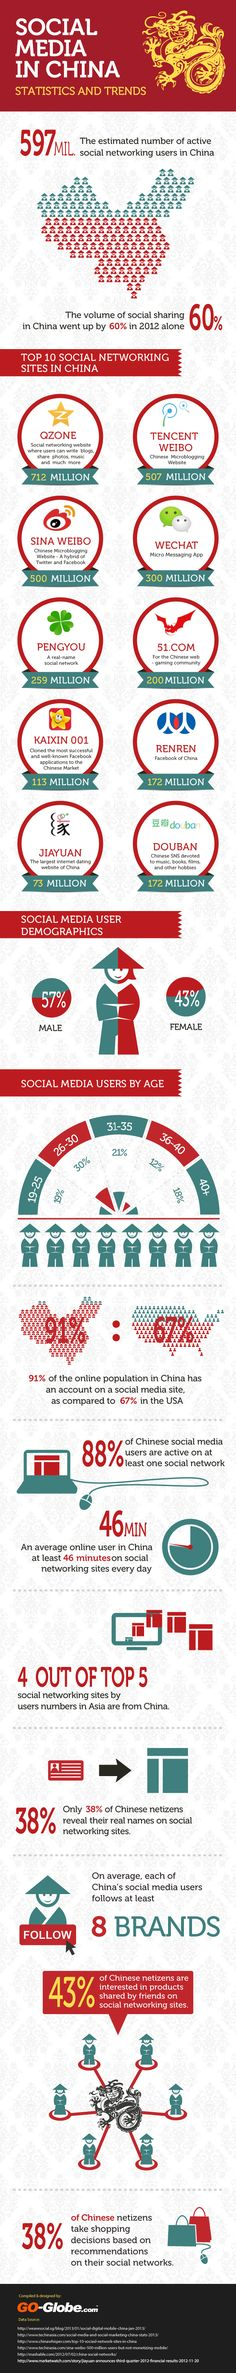 Social Media in China #infographic